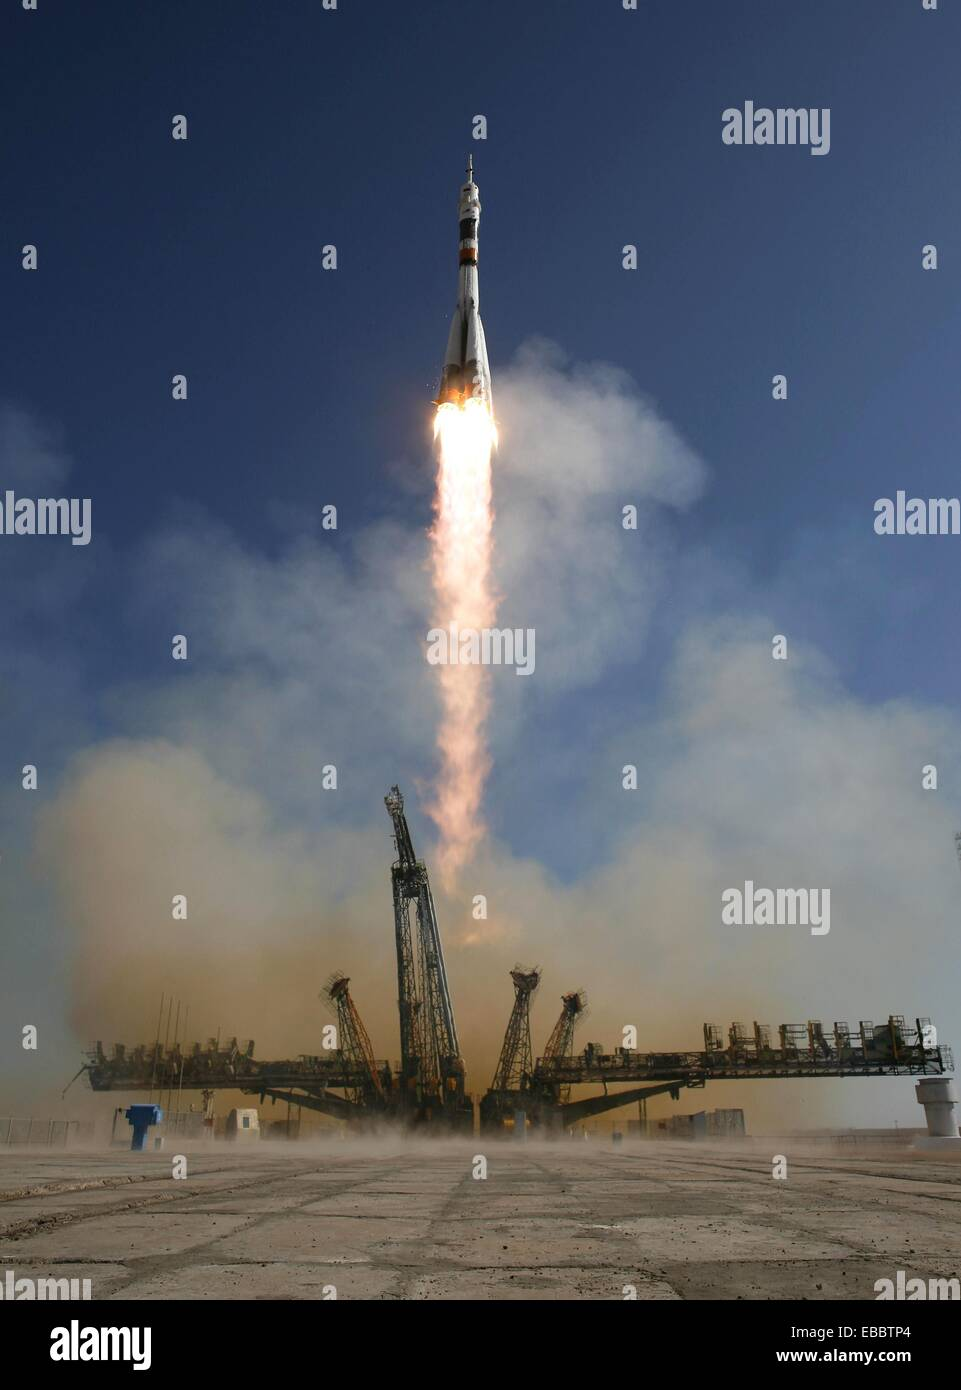 The Soyuz TMA-16 launches from the Baikonur Cosmodrome in Kazakhstan on Wednesday, Sept  30, 2009, carrying Expedition - Stock Image